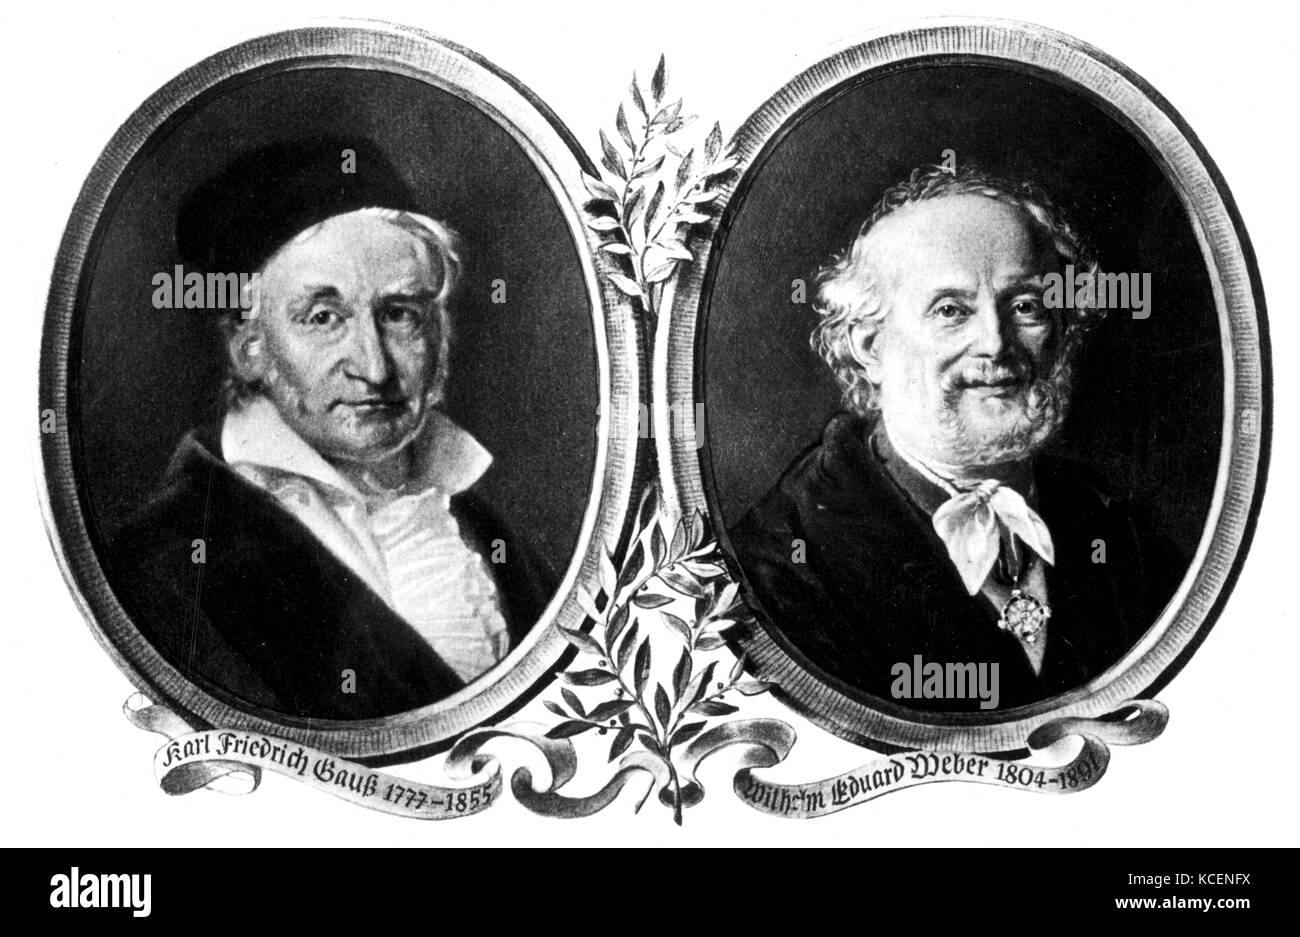 a biography of carl friedrich gauss the german scientist and mathematician Mathematician and scientist johann carl friedrich gauss (30 april 1777 – 23 february 1855) was a german mathematician and physical scientist who contributed significantly to many fields.